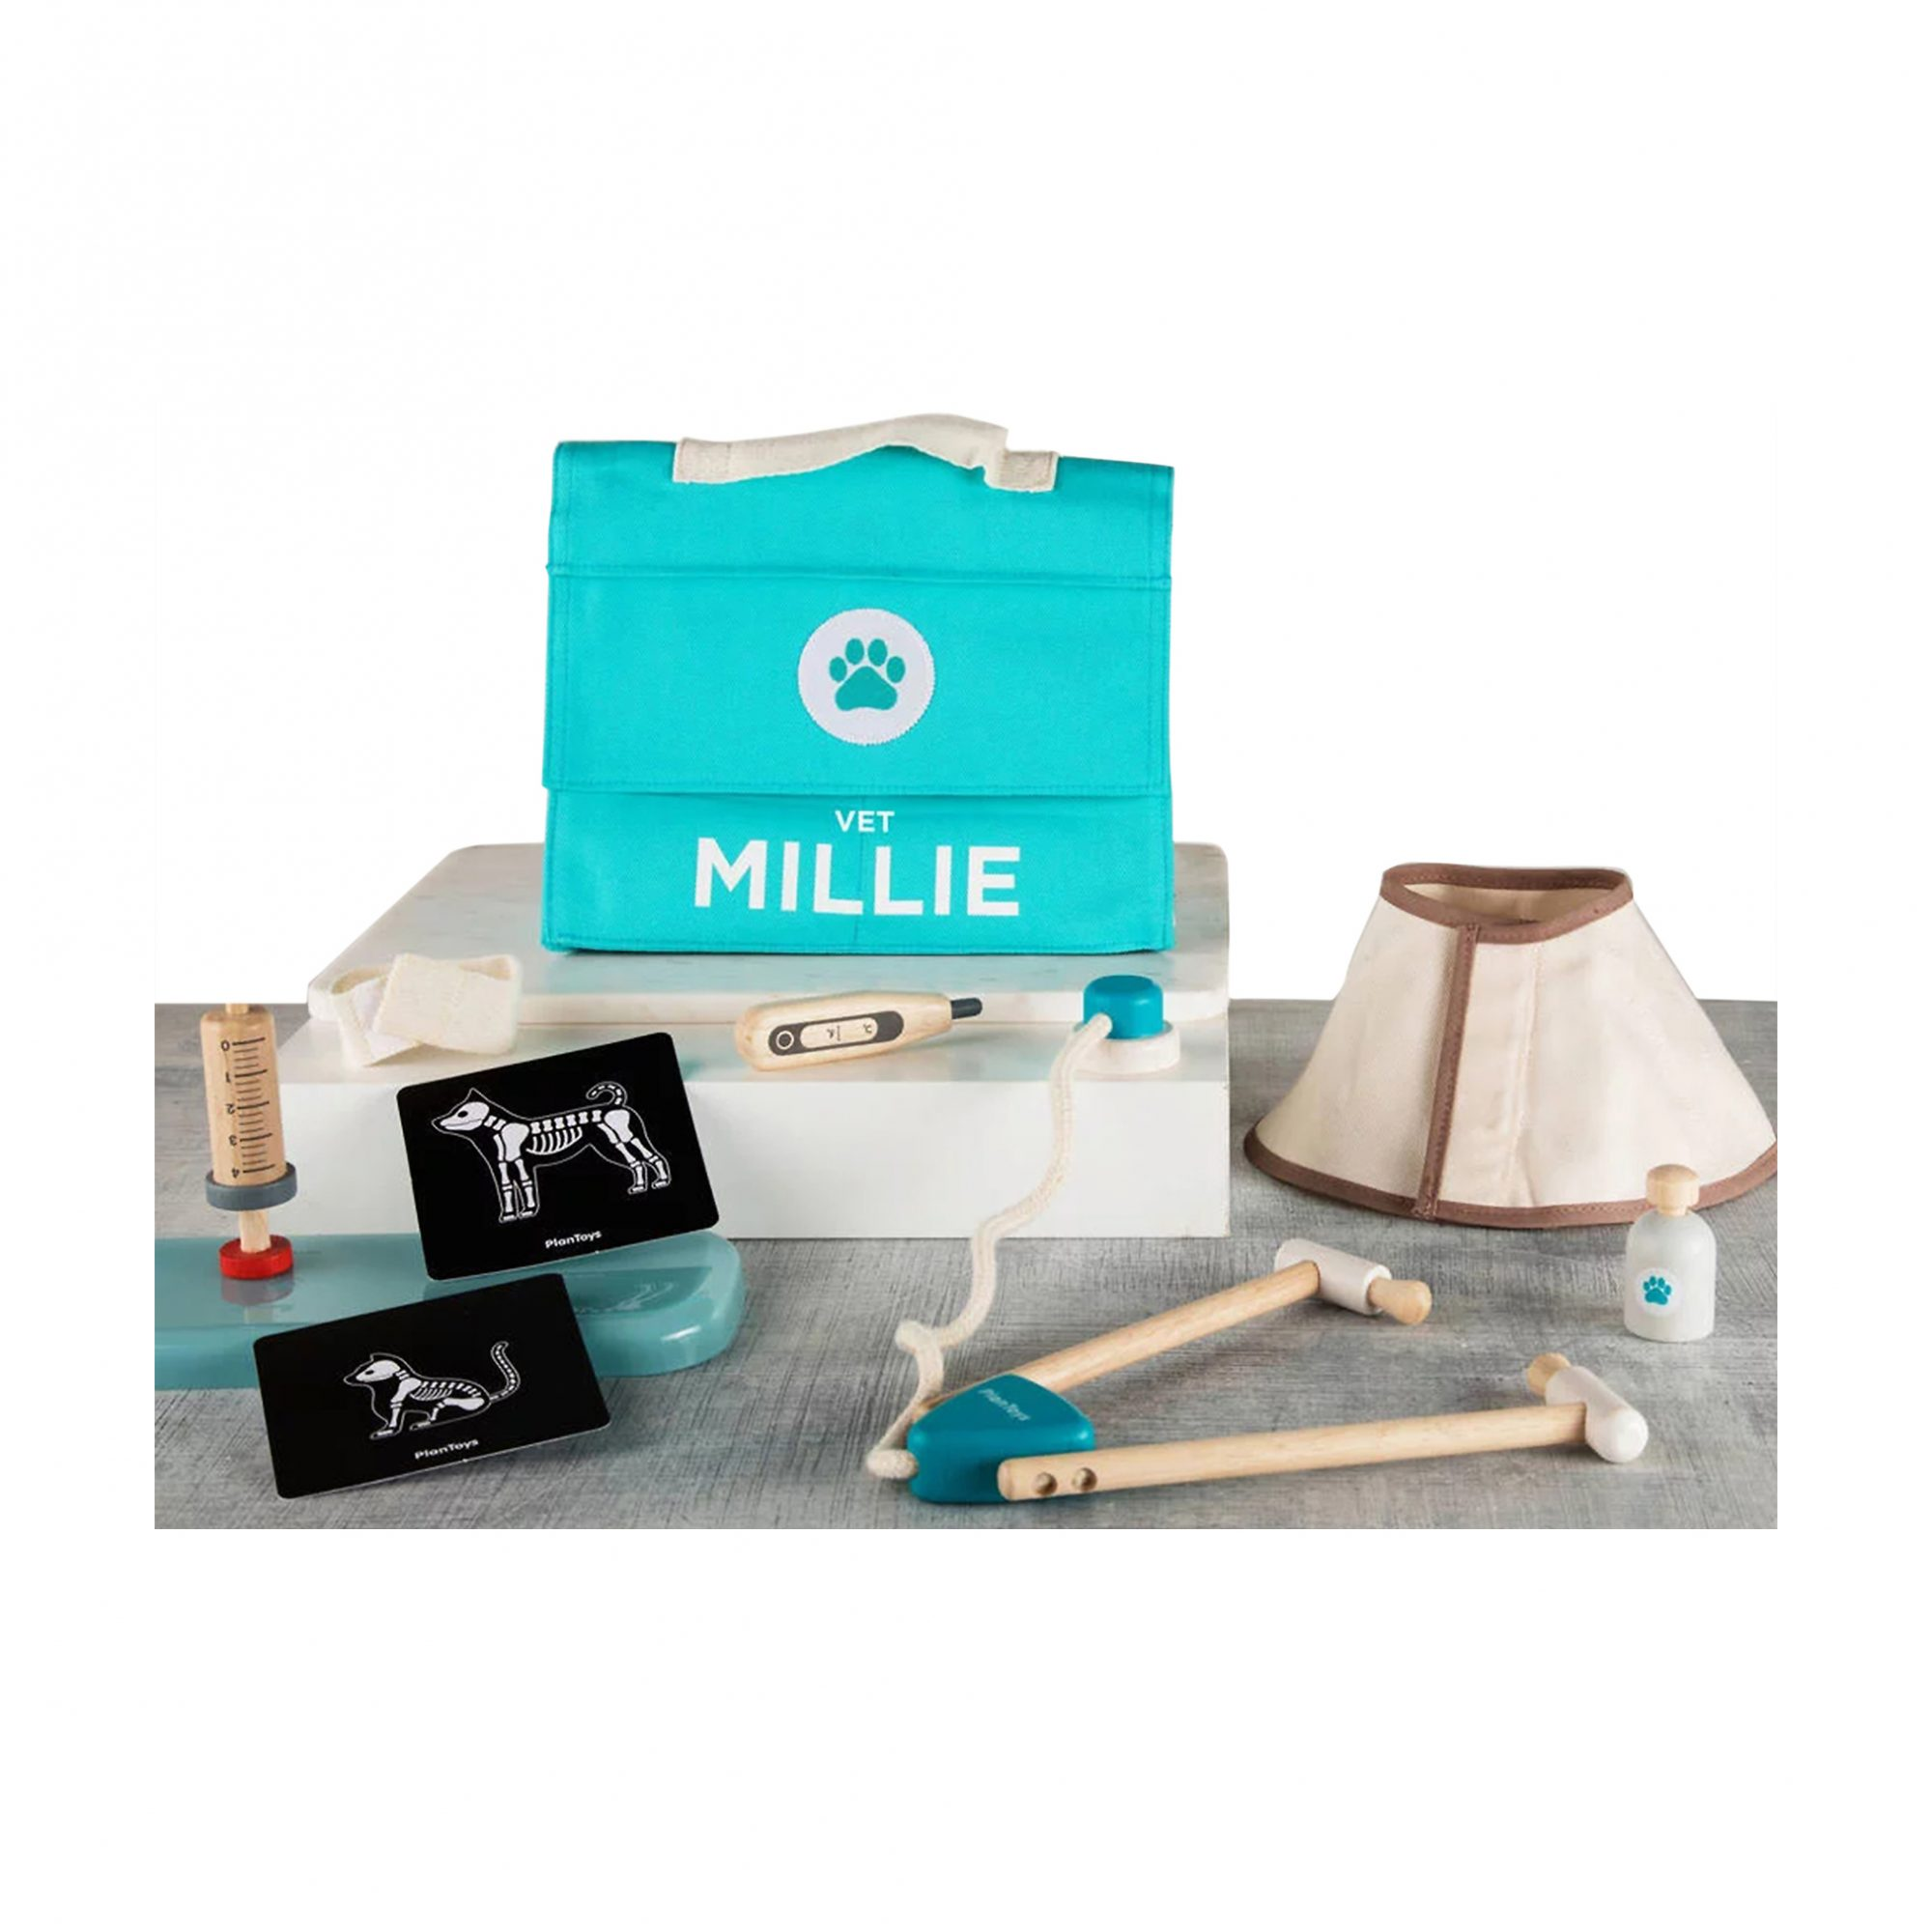 Cool gifts for kids - Personalized Wooden Vet Set Toy